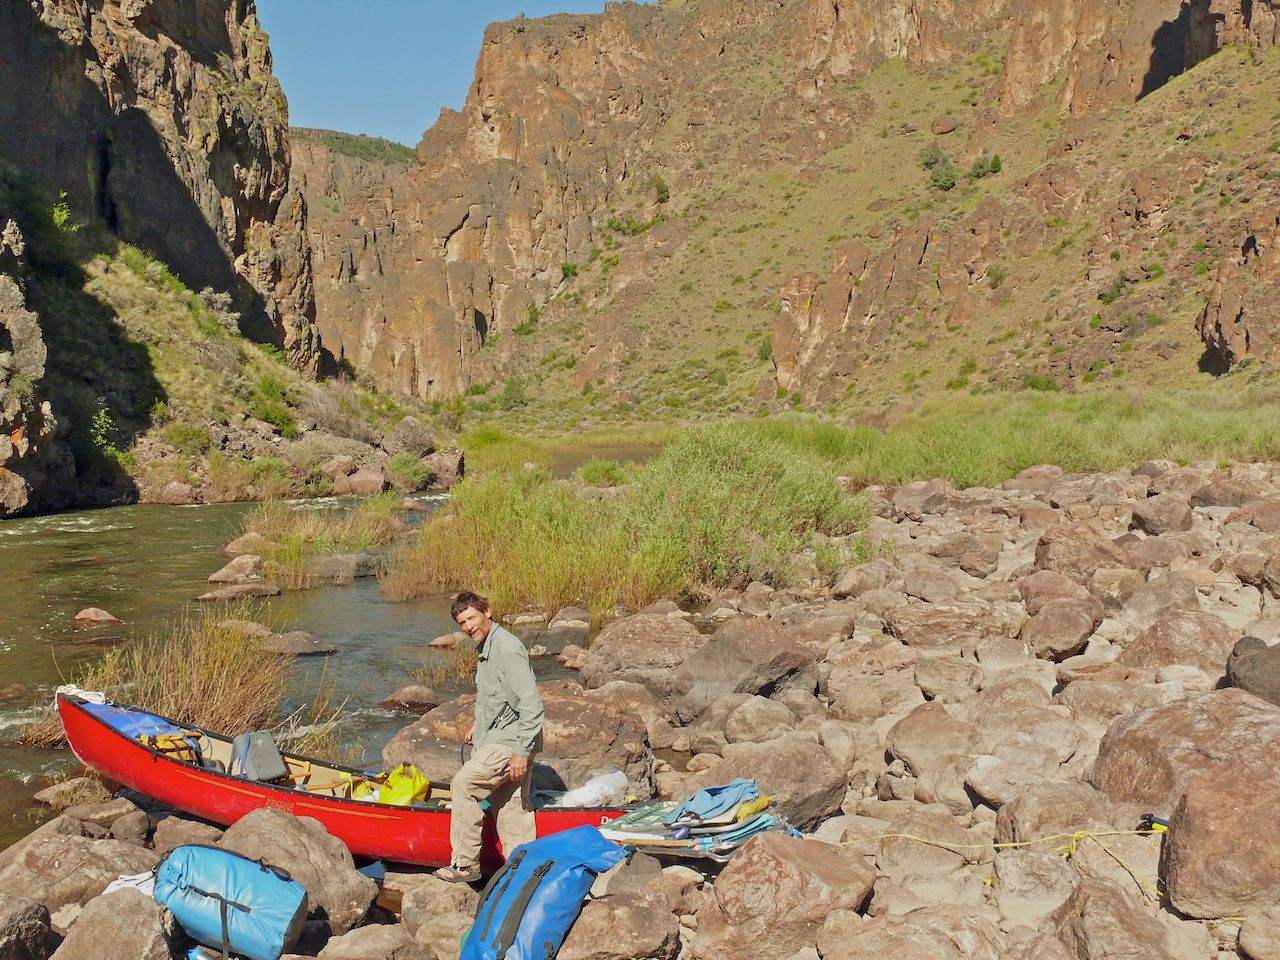 Whitewater canoeing on the South Fork of the Owyhee River